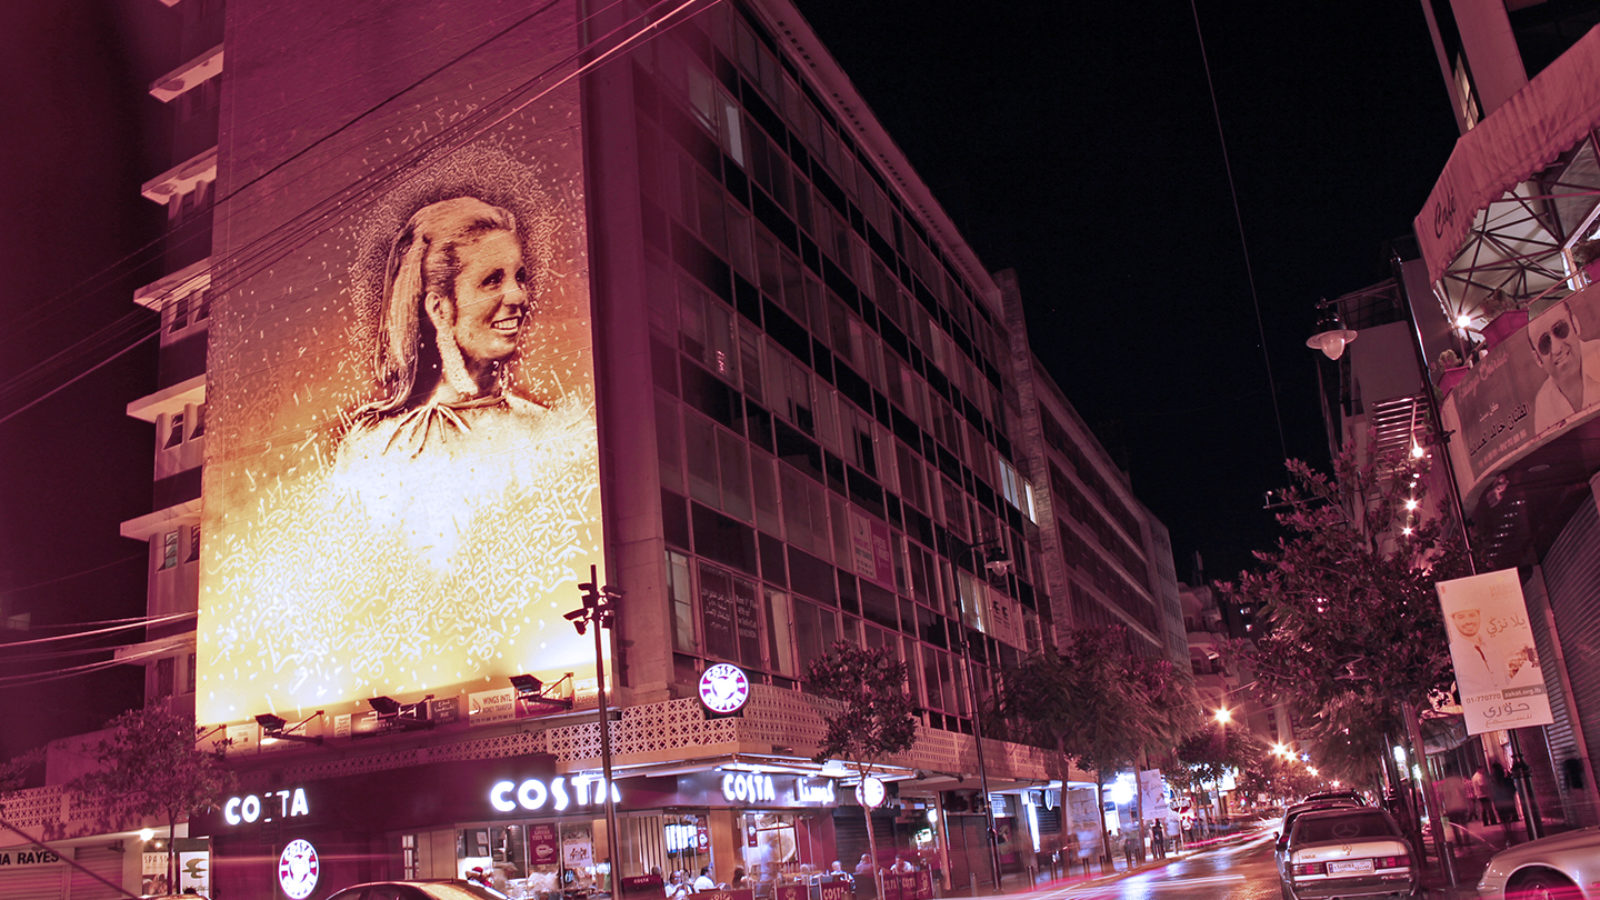 Eternal_Sabah_Mural_on_Assaf_building_in_Hamra,Beirut_-_Nightshot